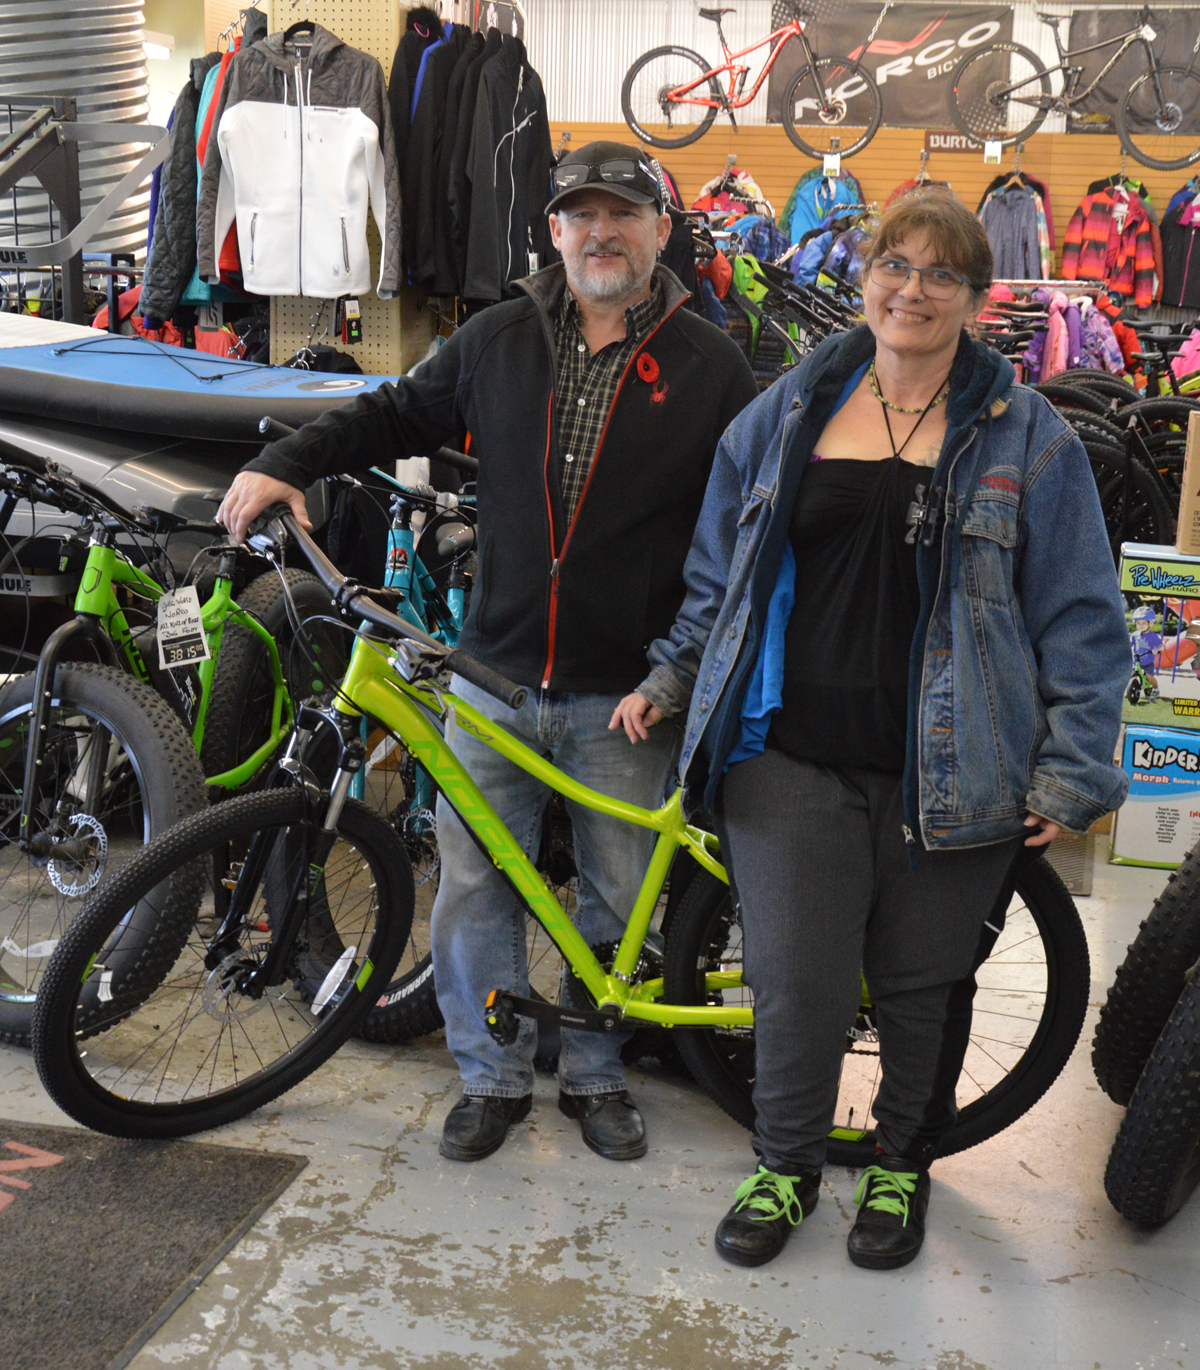 John from Cycle World presents Lorrie Taylor with the Norco Storm mountain bike. RCMP Photo